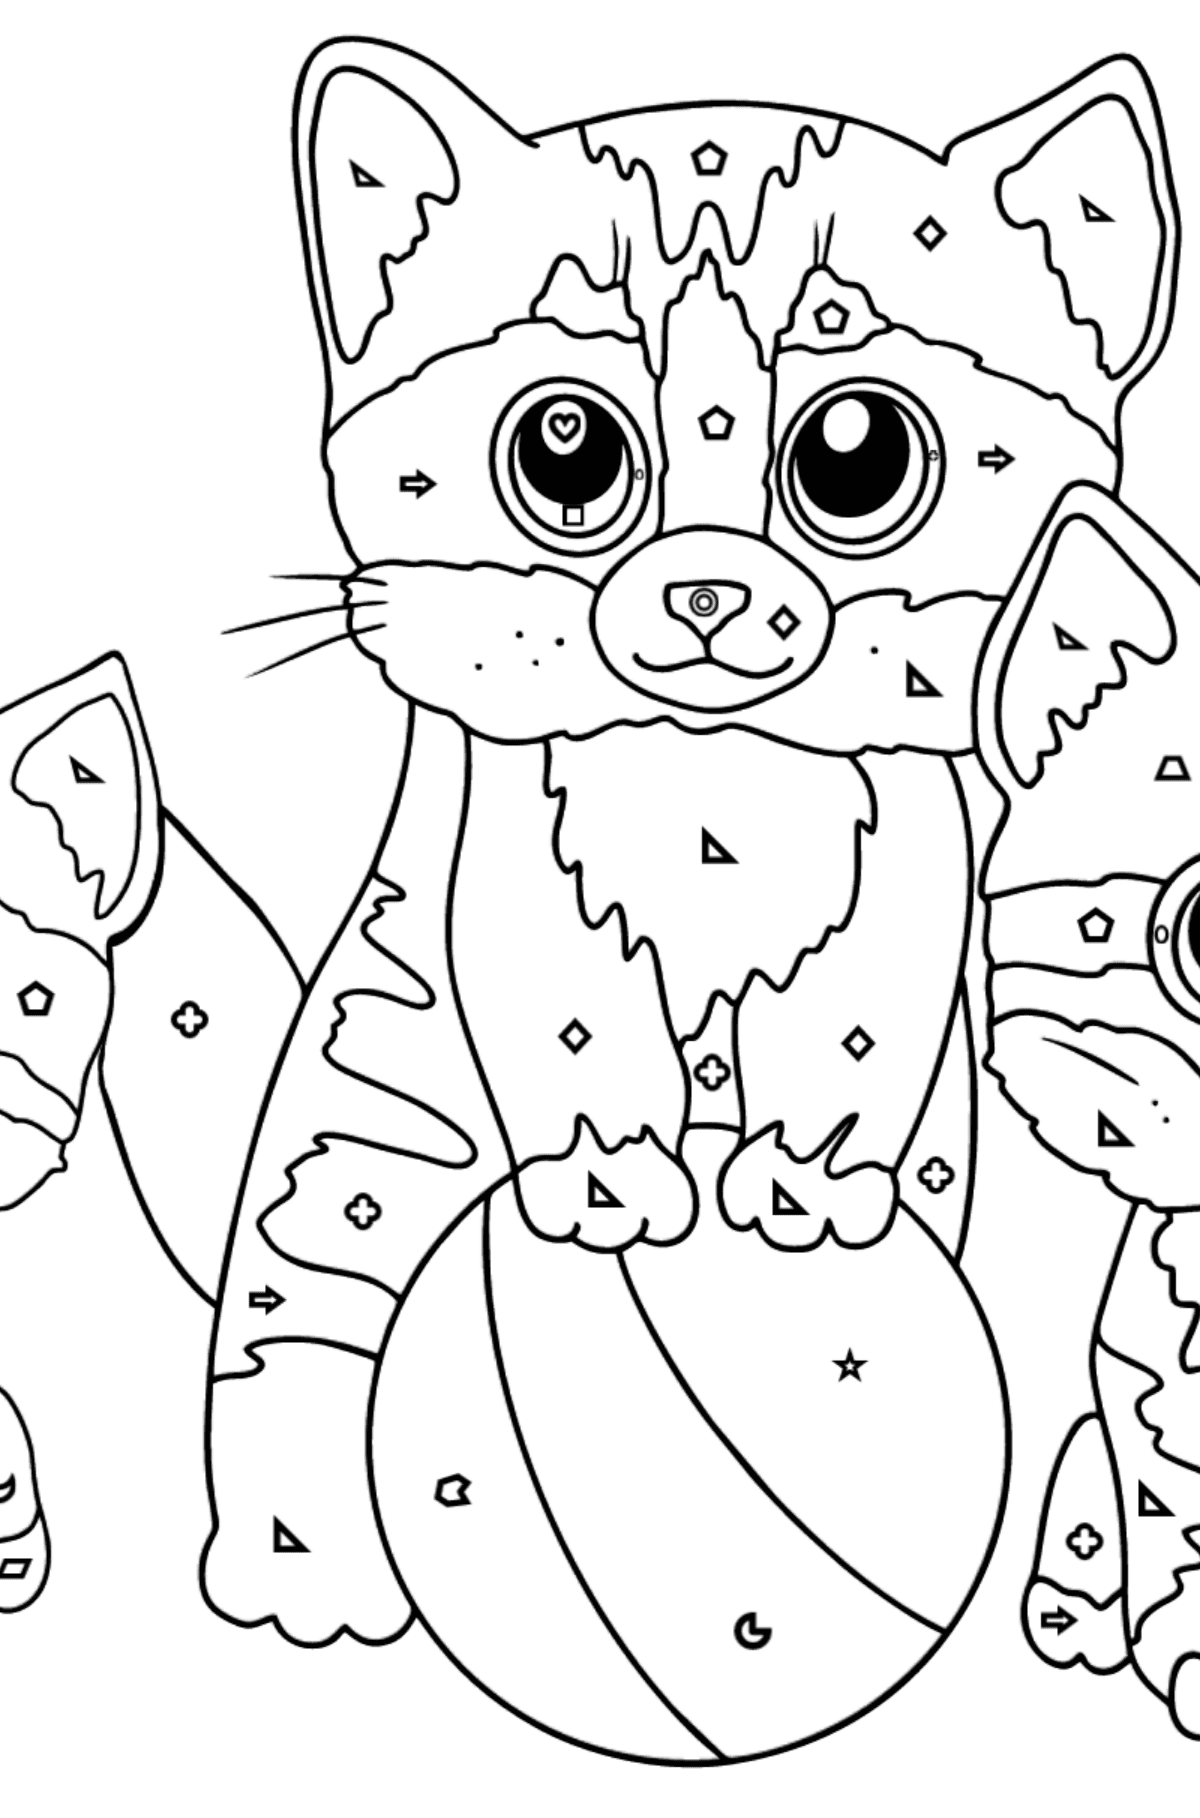 Coloring Page - Three Kittens are Playing Together with a Ball  - Coloring by Geometric Shapes for Kids